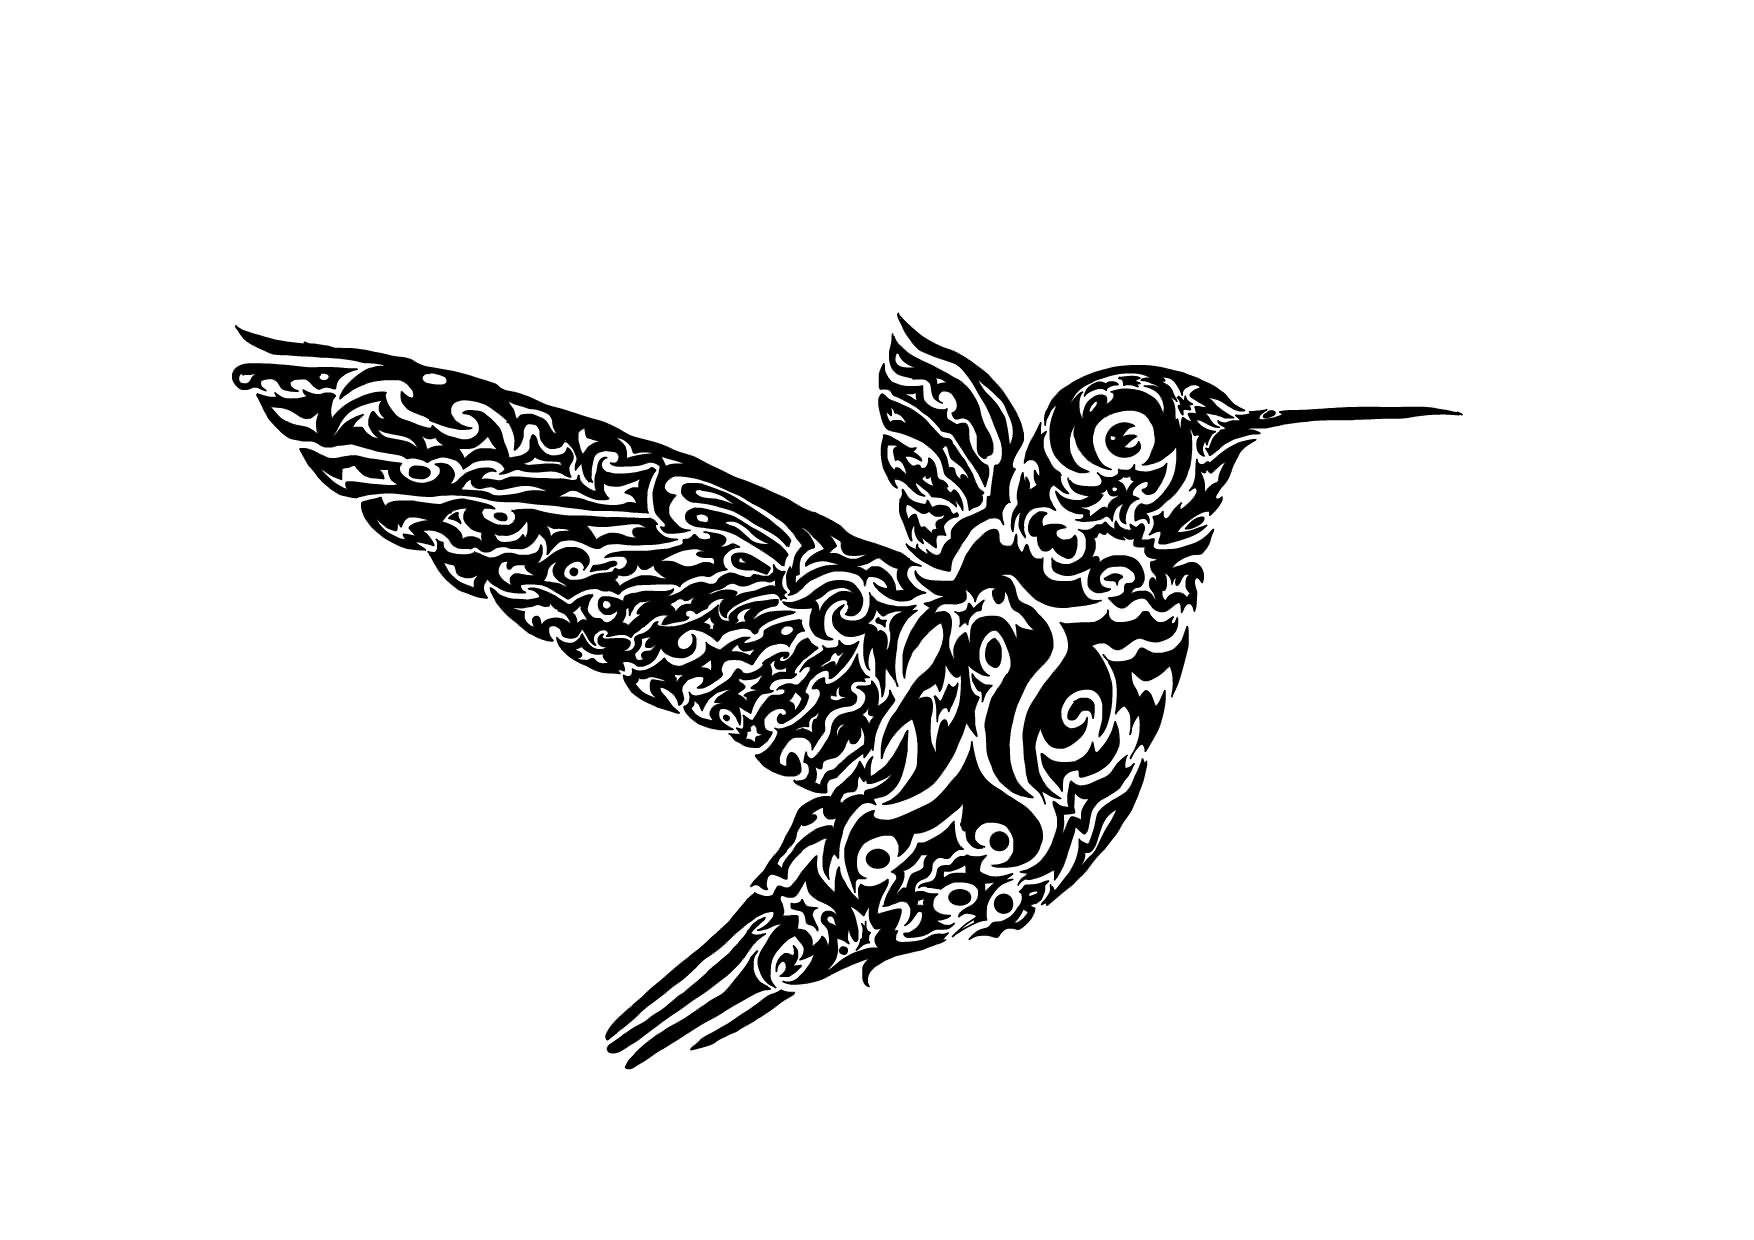 super black tribal hummingbird tattoo design. Black Bedroom Furniture Sets. Home Design Ideas